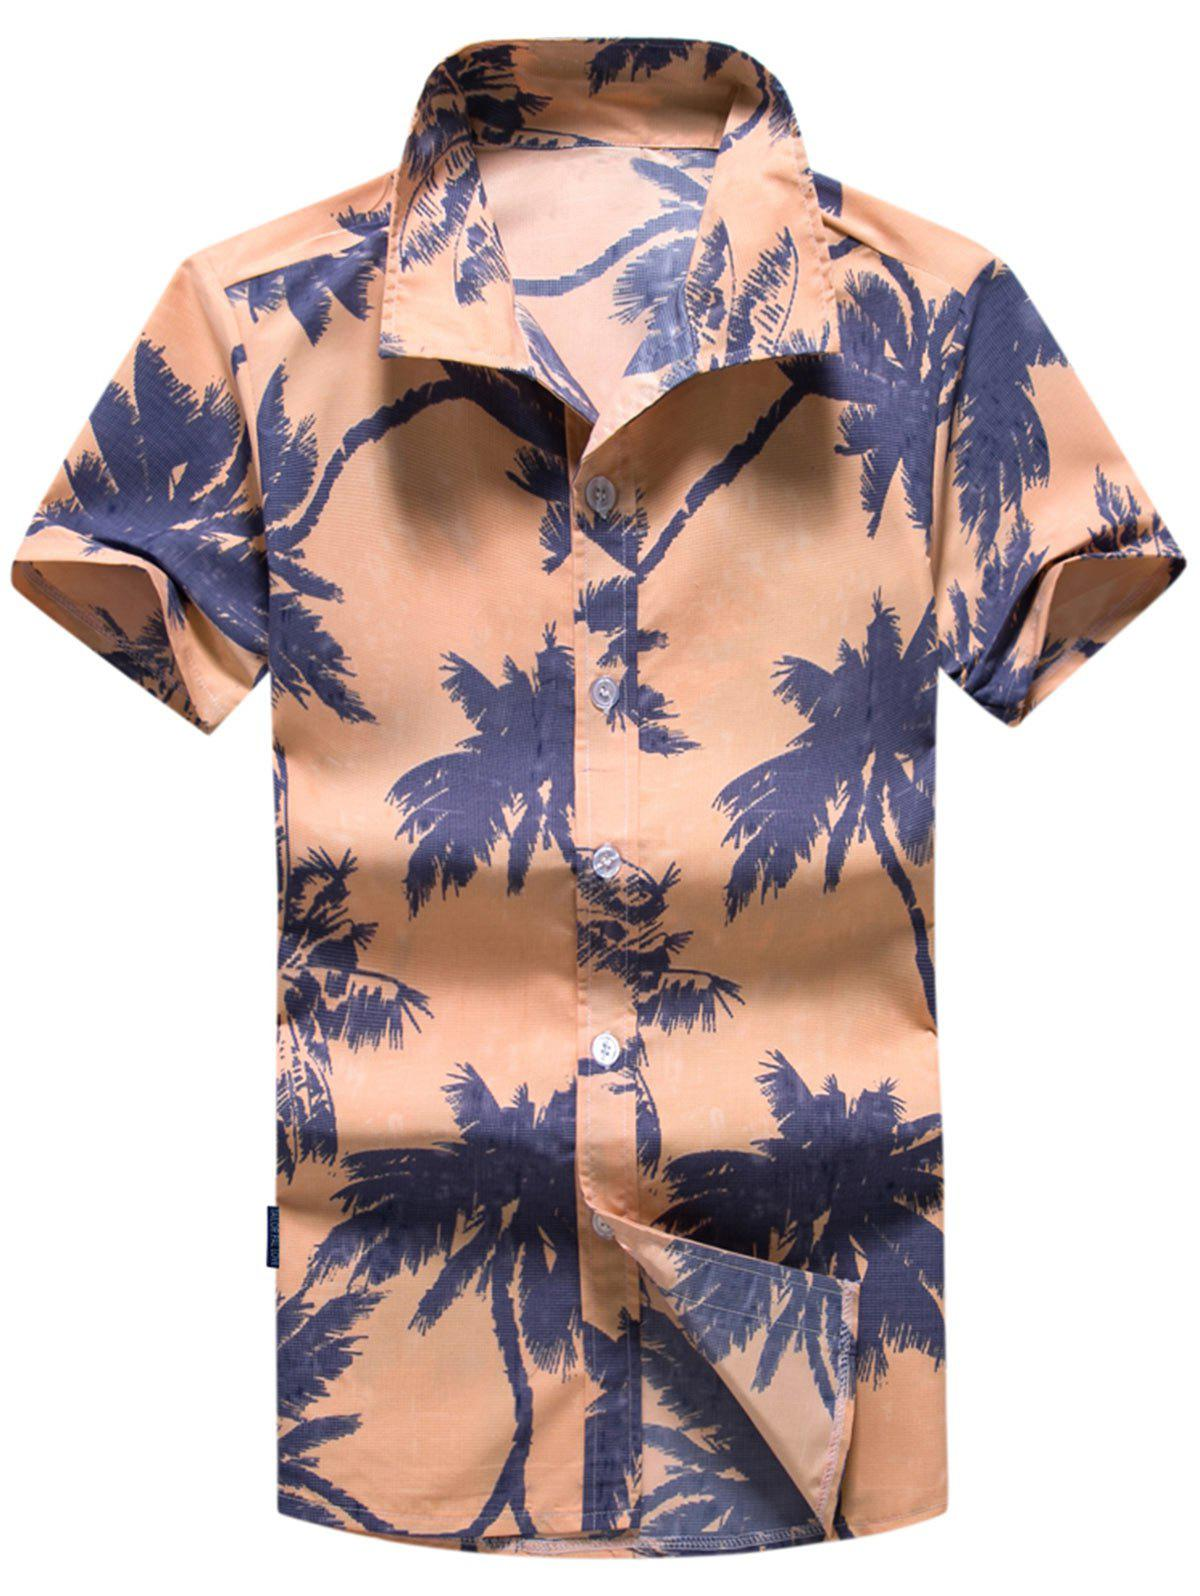 Coconut Tree Printed Short Sleeve Hawaiian Shirt - ORANGE L